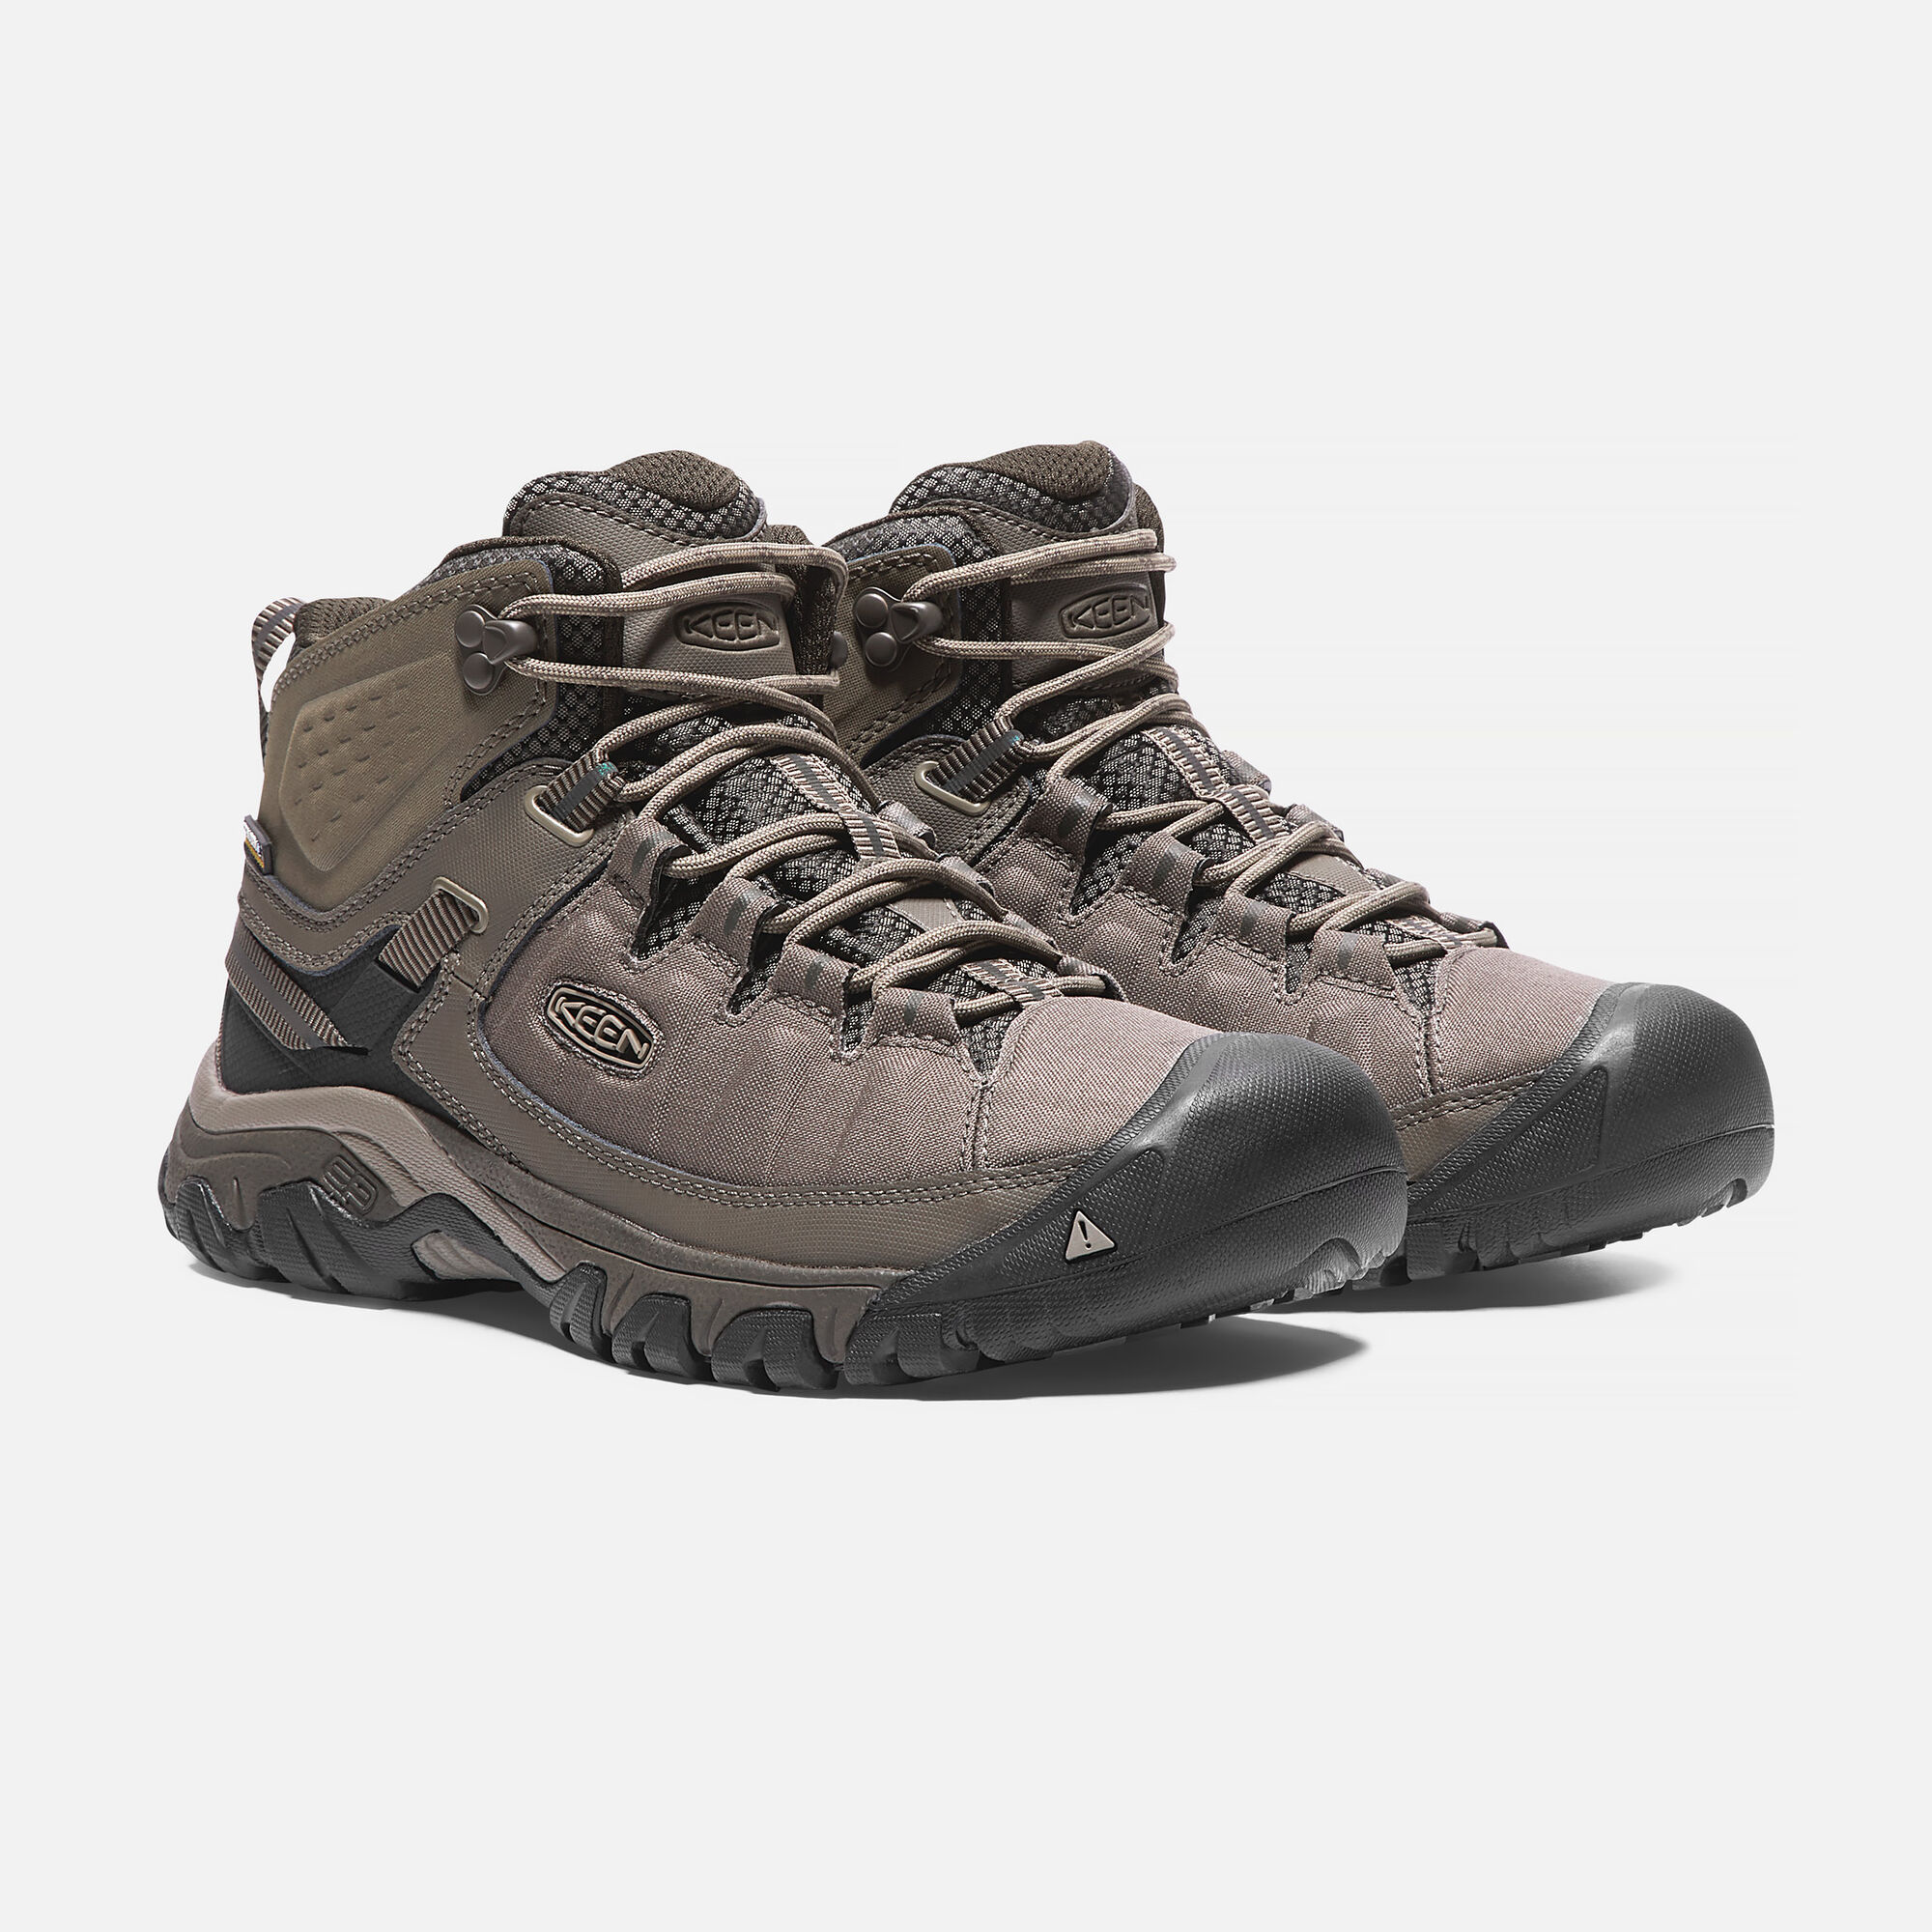 8465981db99 Men's Targhee EXP Waterproof Mid Wide - A mile-hungry hiking boot ...